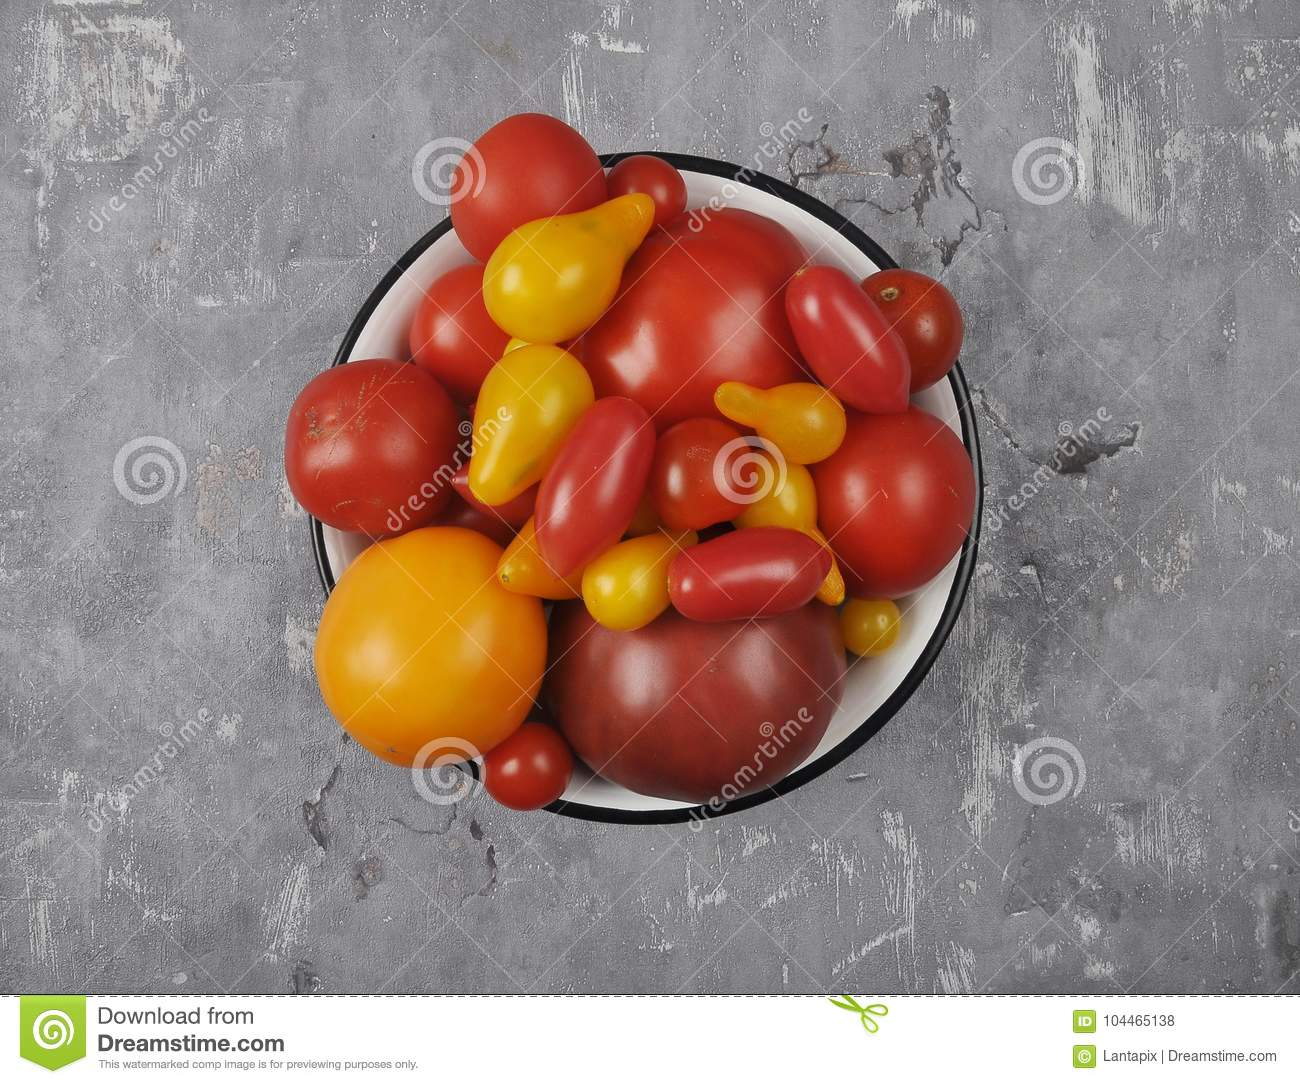 Variety of tomato cultivars in enamel bowl on concrete